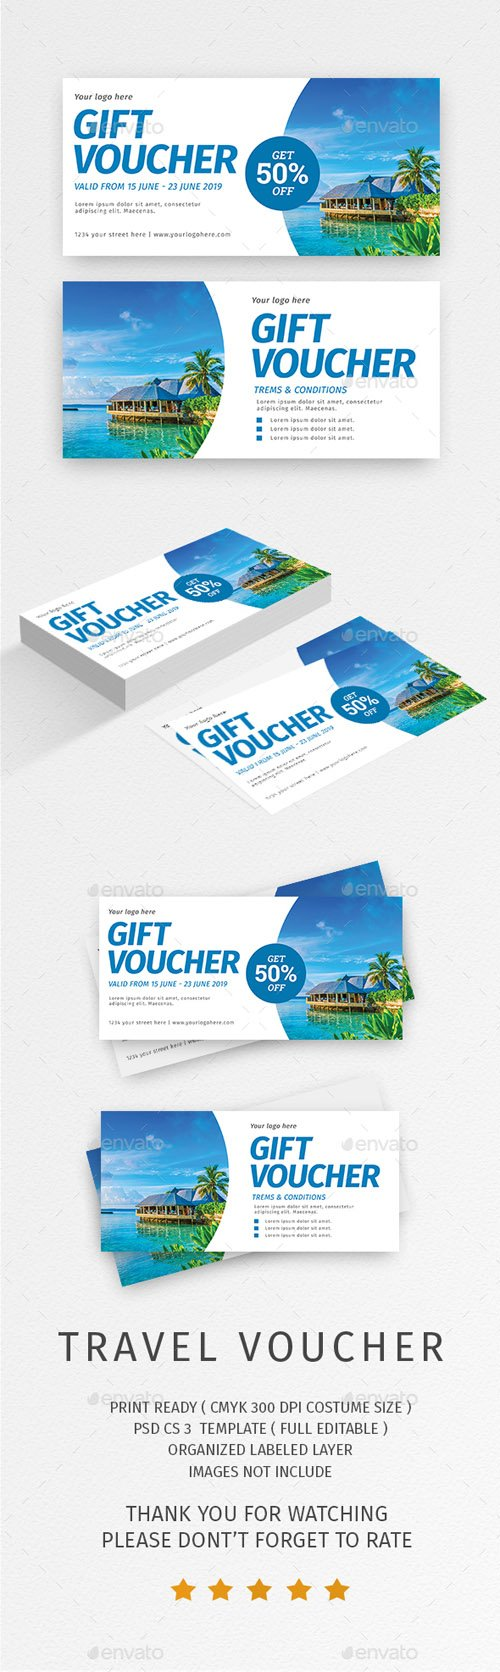 Travel Voucher 20090770